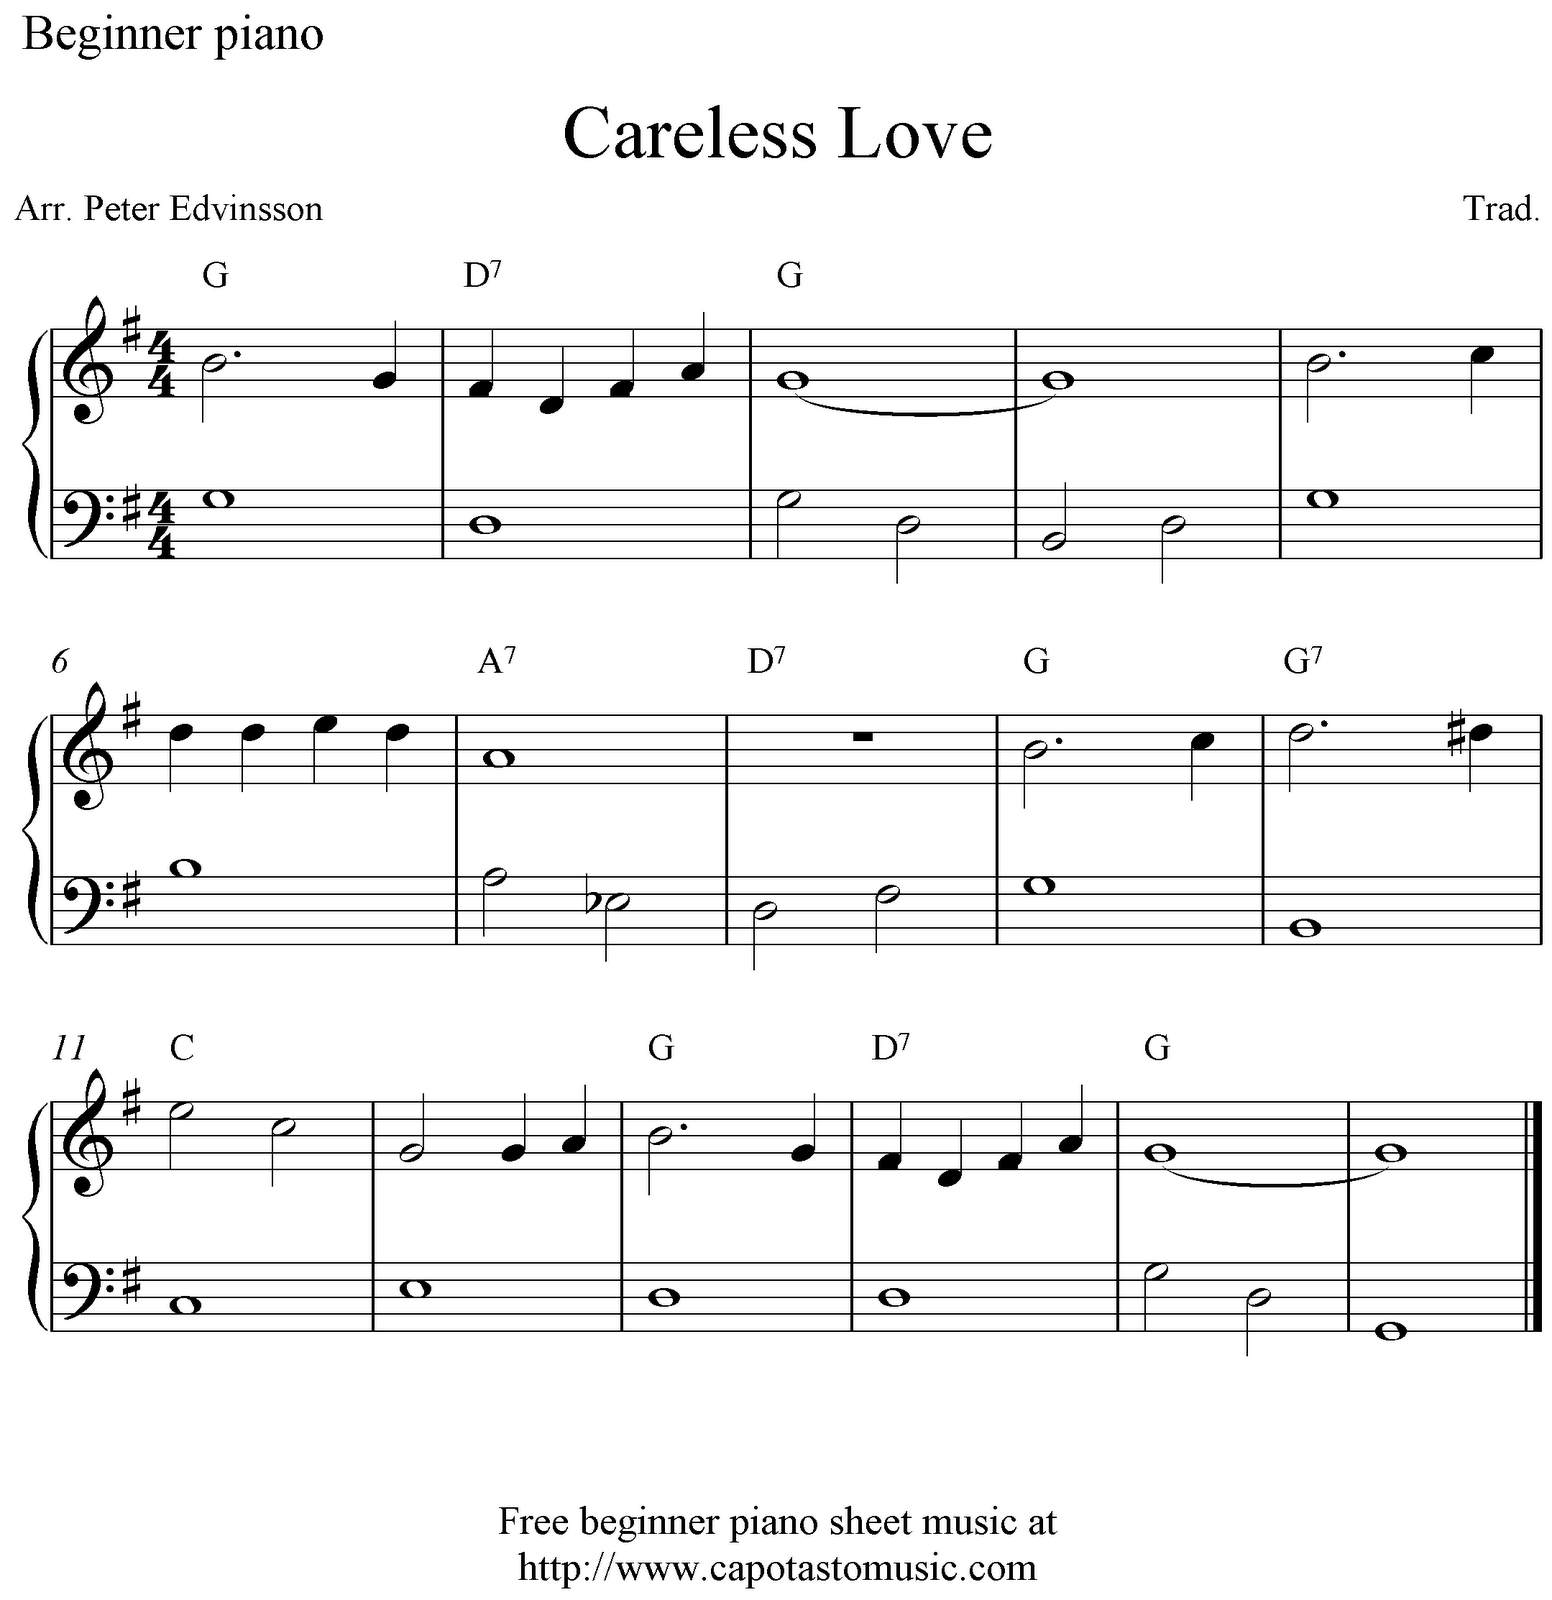 Free beginner piano sheet music, Careless Love